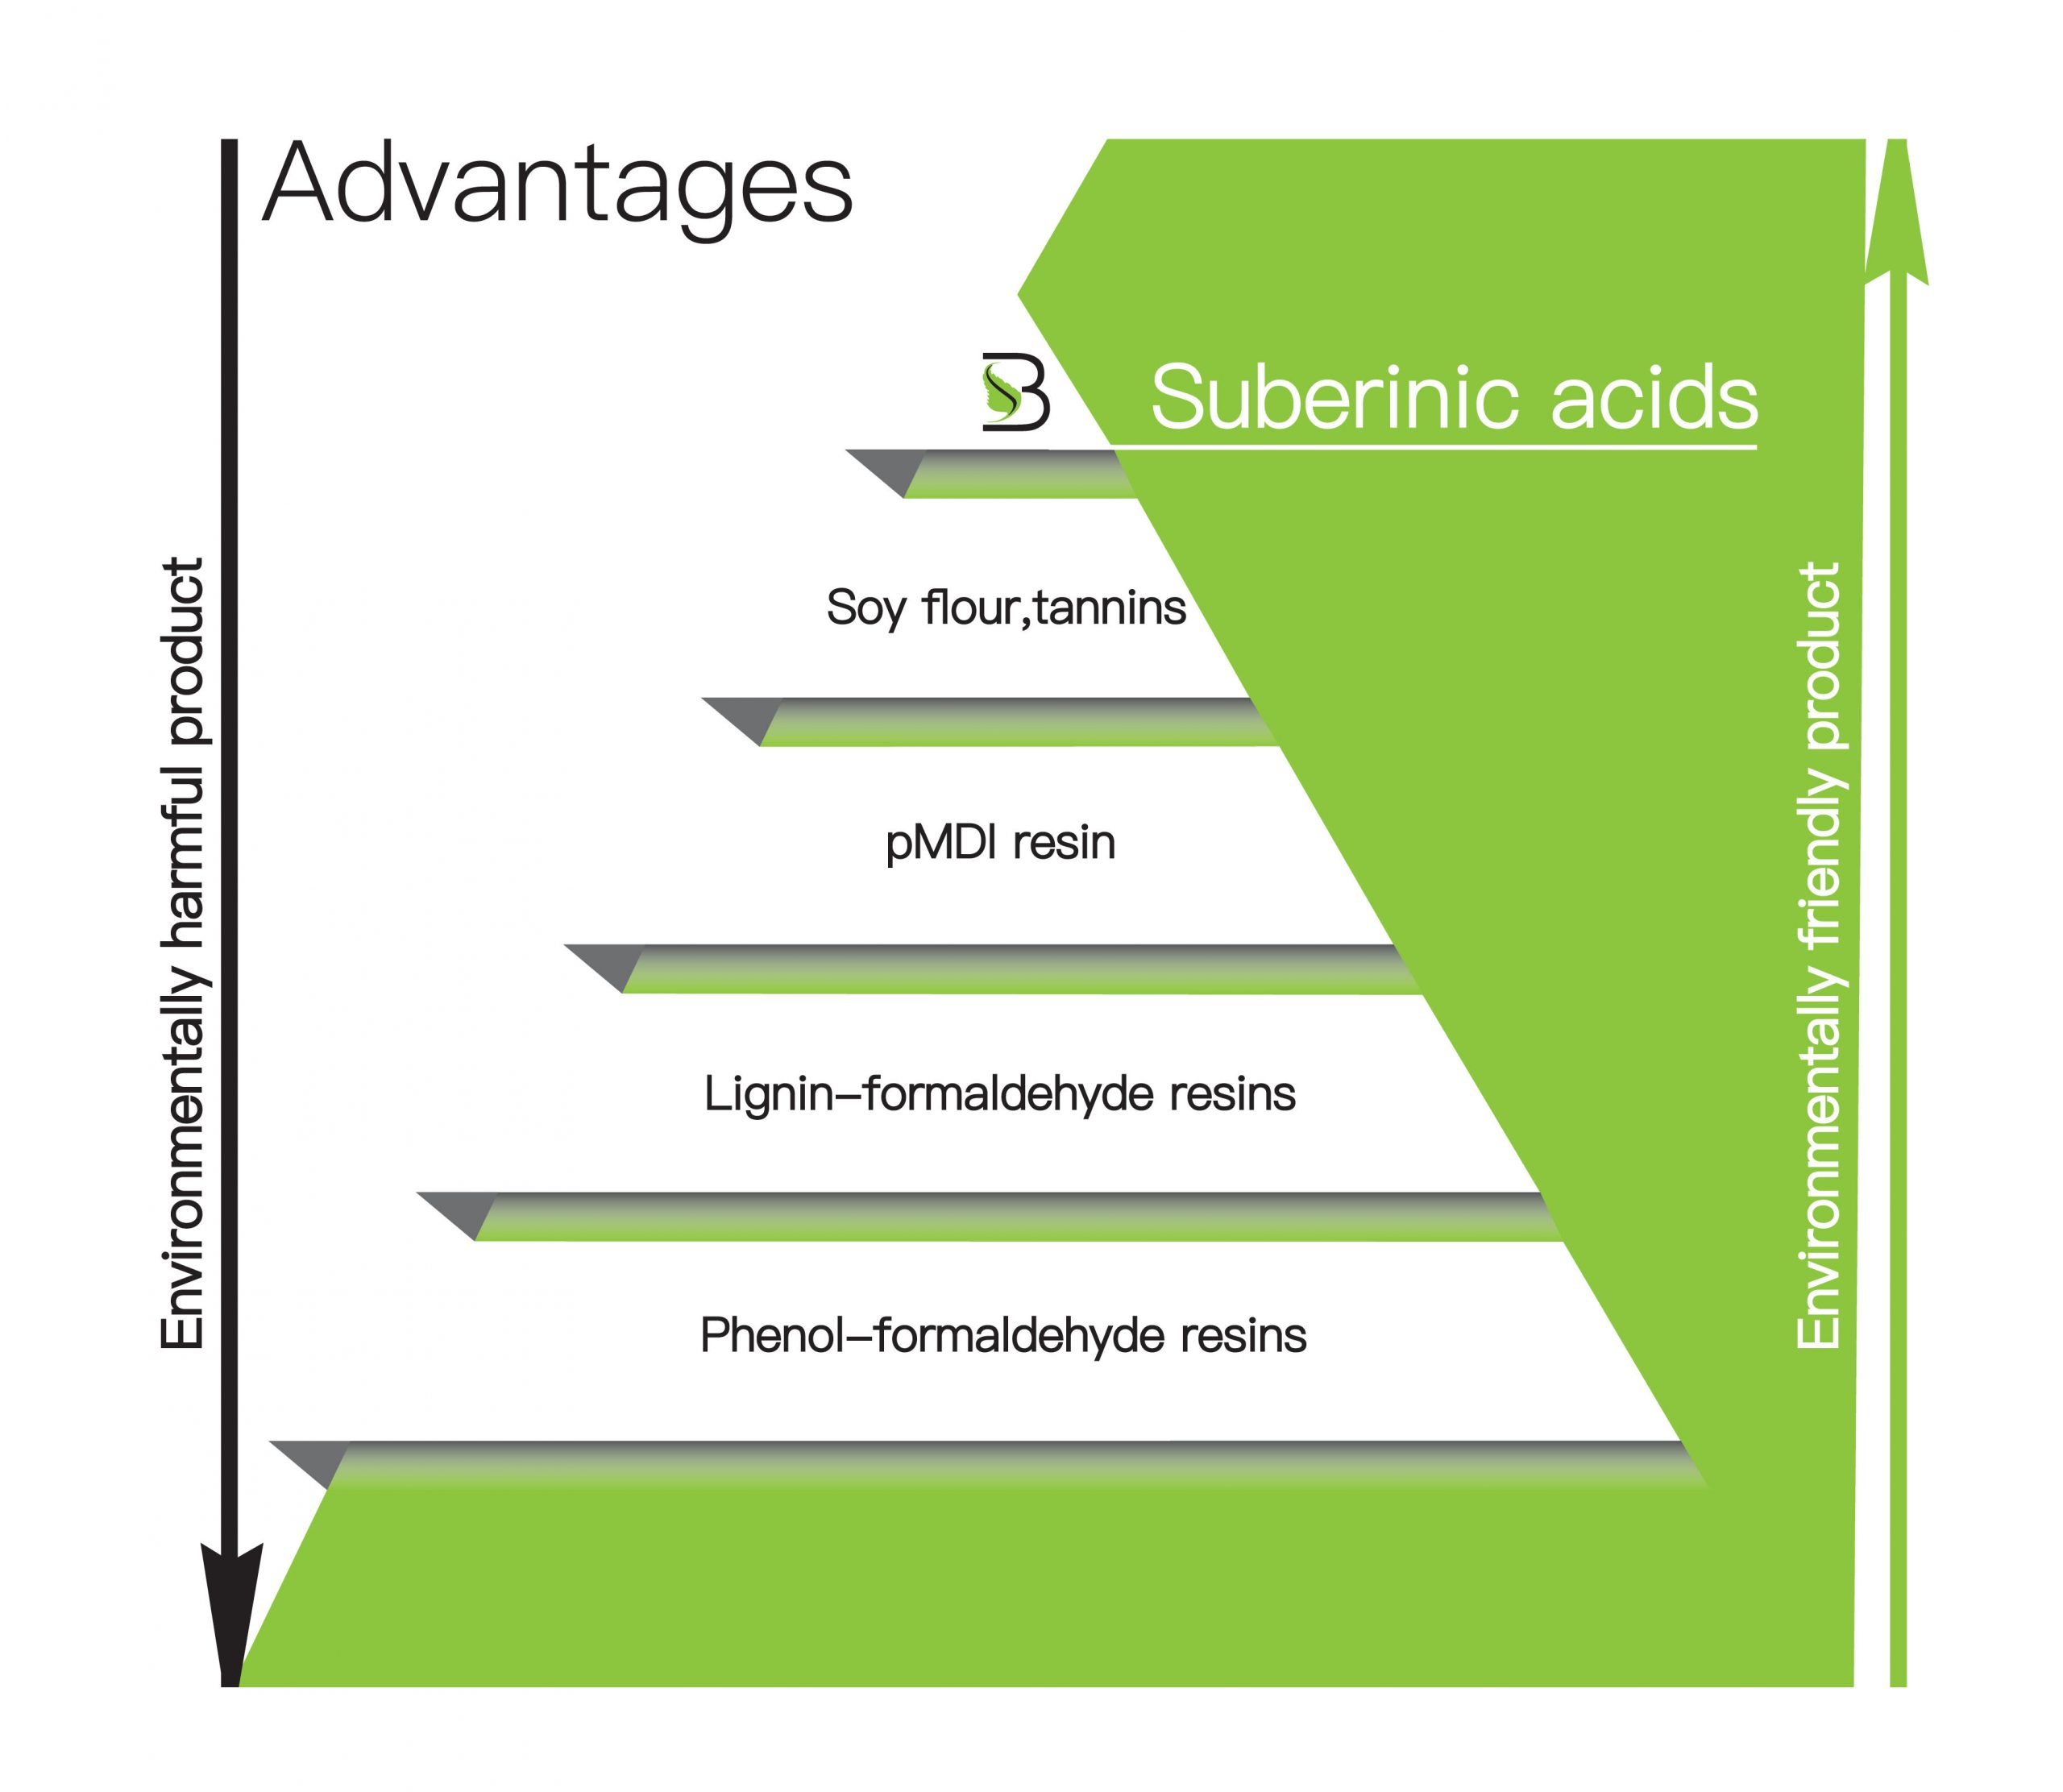 Advantages of Suberinic acids - Suberbinder